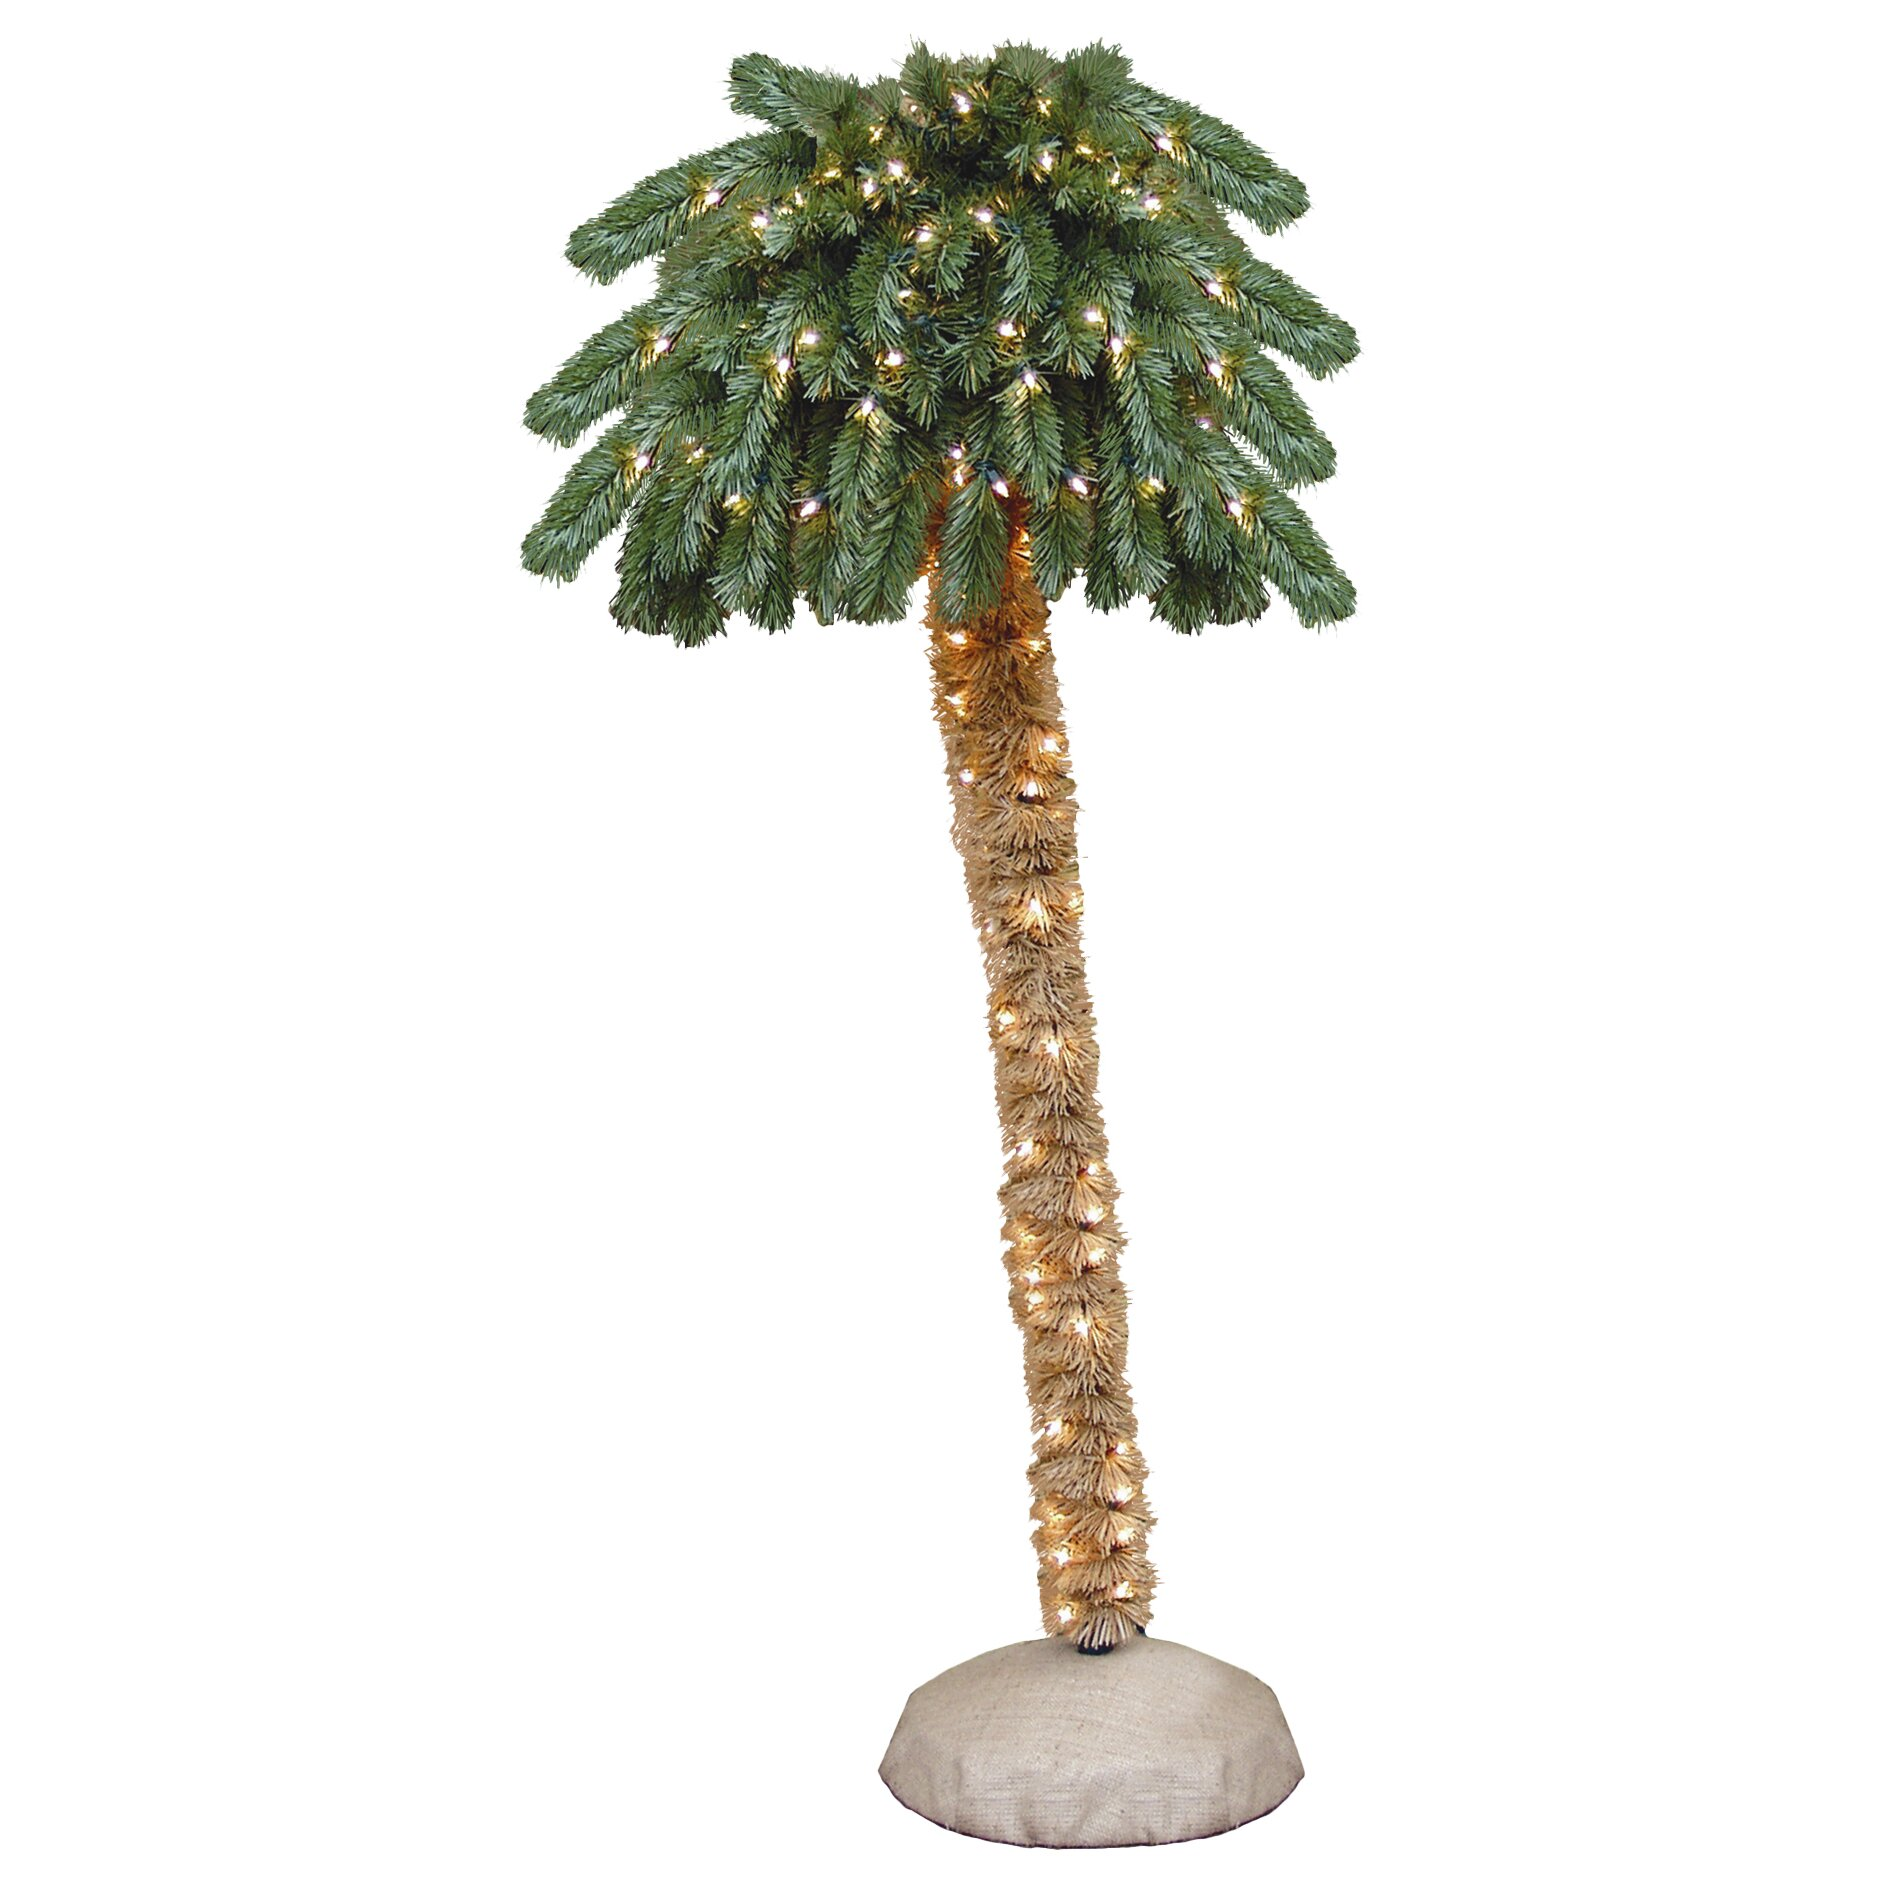 Christmas Lights Palm Trees: 6' Green Tropical Artificial Christmas Palm Tree With 150